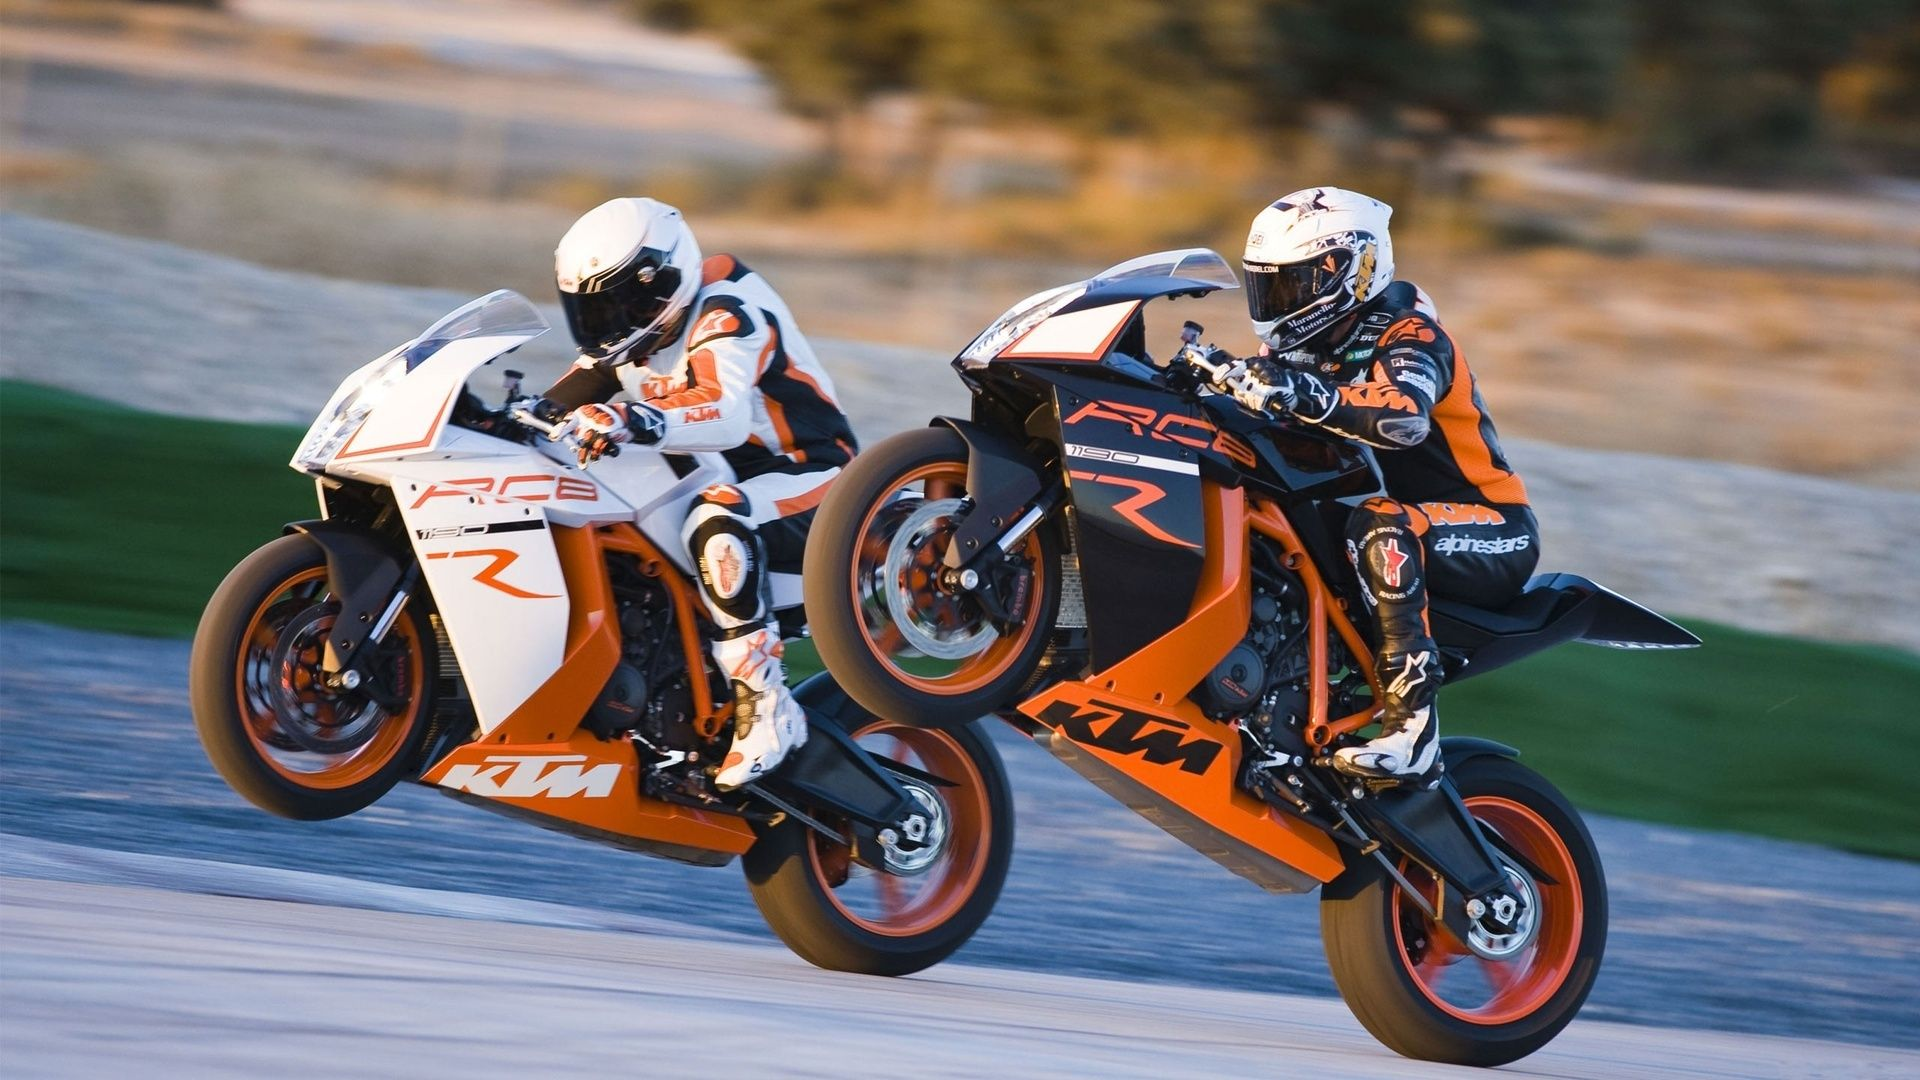 Ktm motorcycles hd wallpapers free wallaper downloads ktm sport - Ktm Fastest Growing Motorcycle Manufacturer In North America